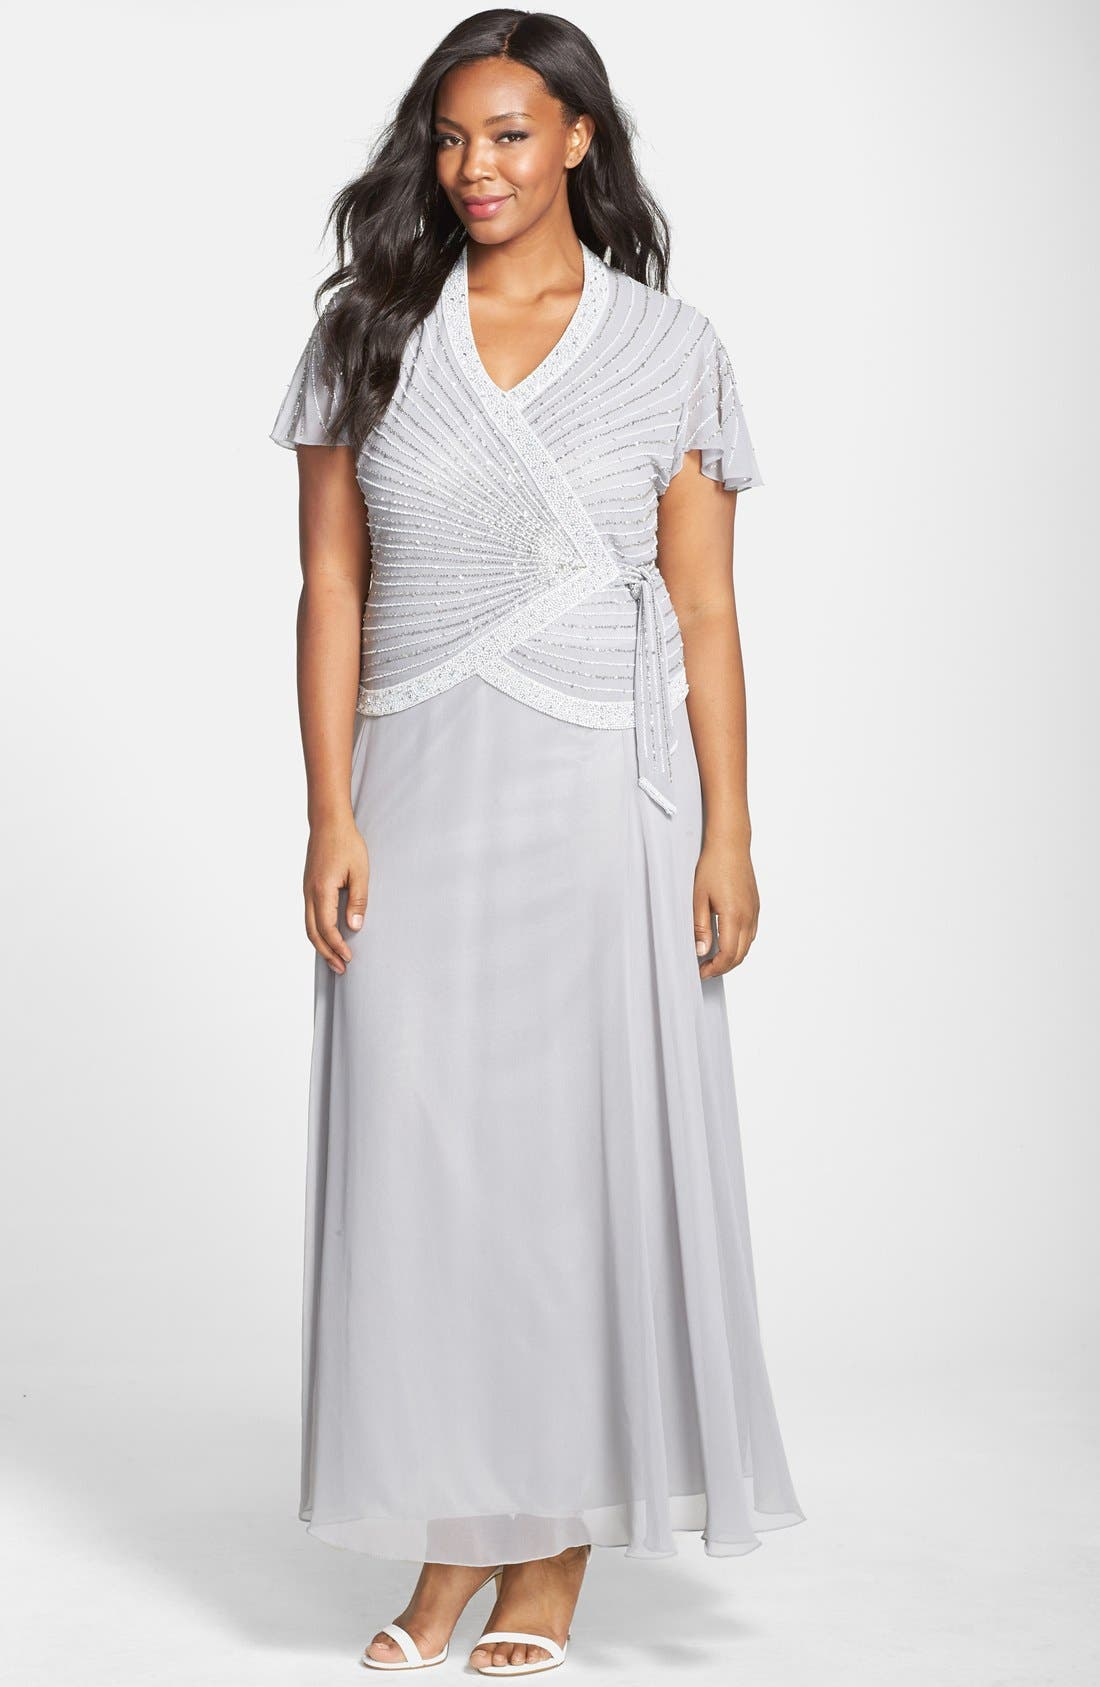 Embellished Mock Two Piece Gown,                             Main thumbnail 1, color,                             060